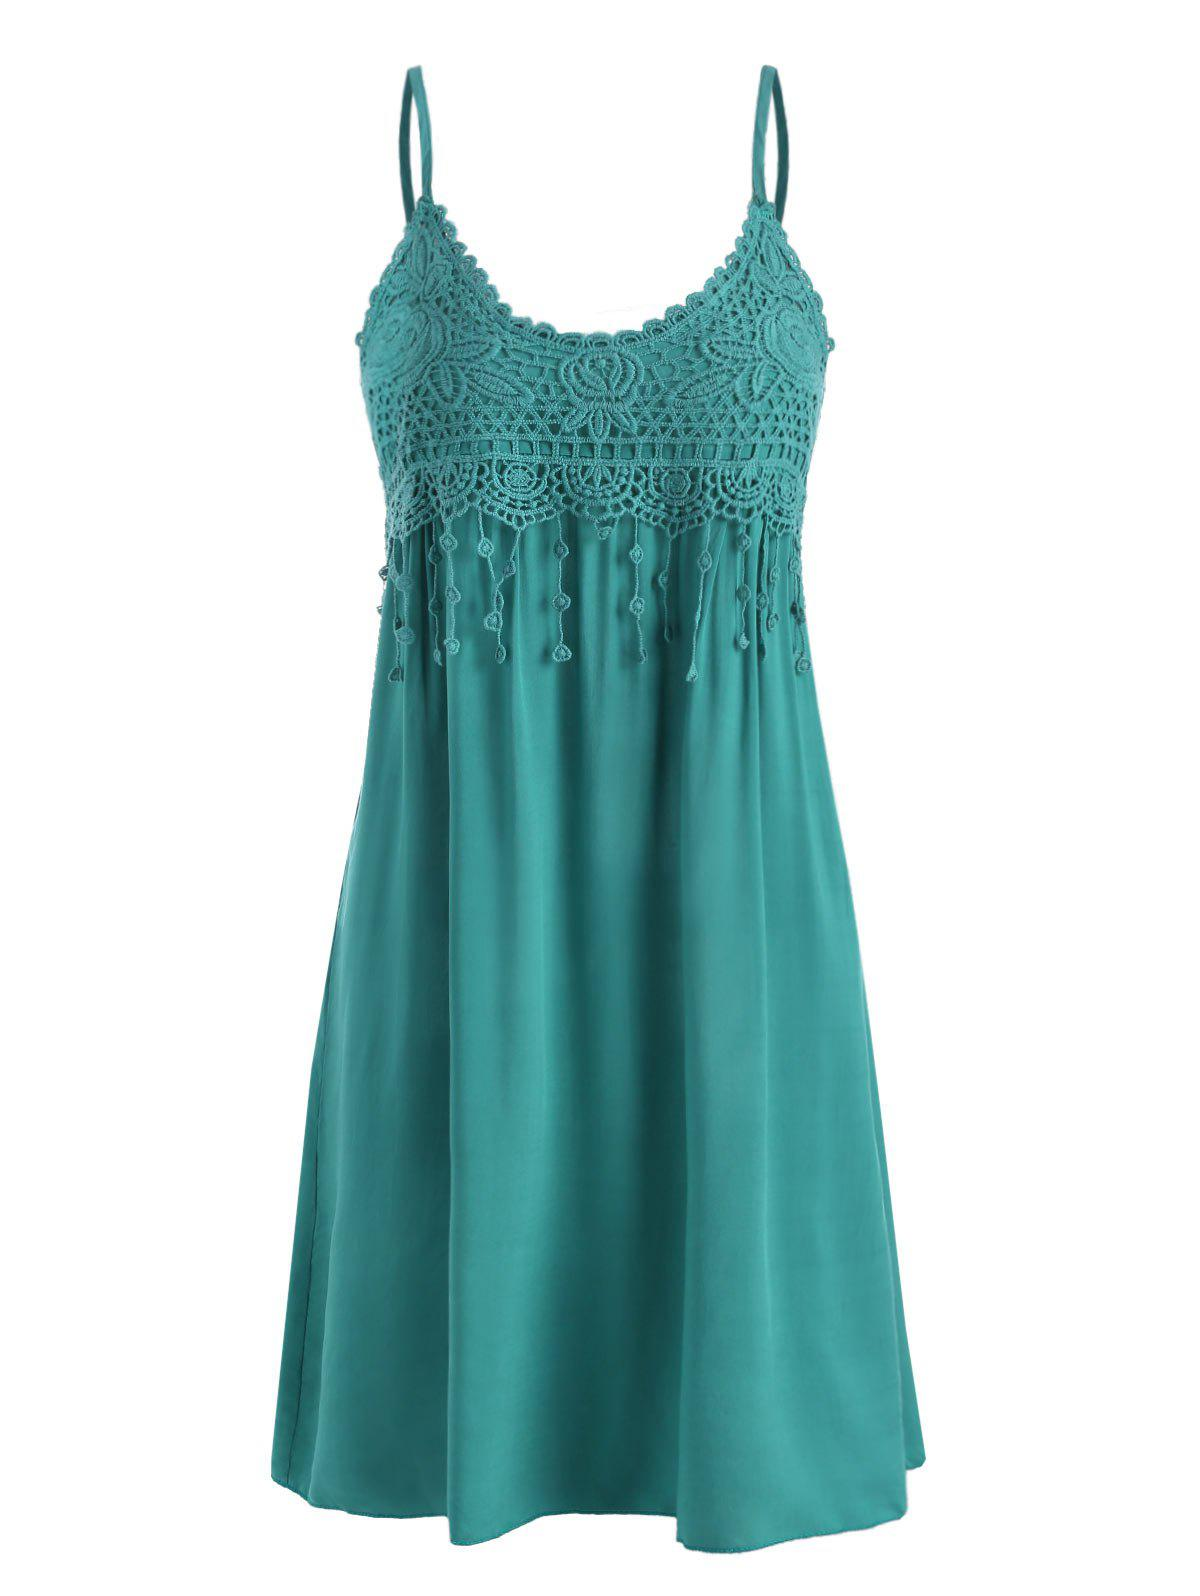 Cami Crochet Lace Panel Mini Dress - DEEP GREEN XL